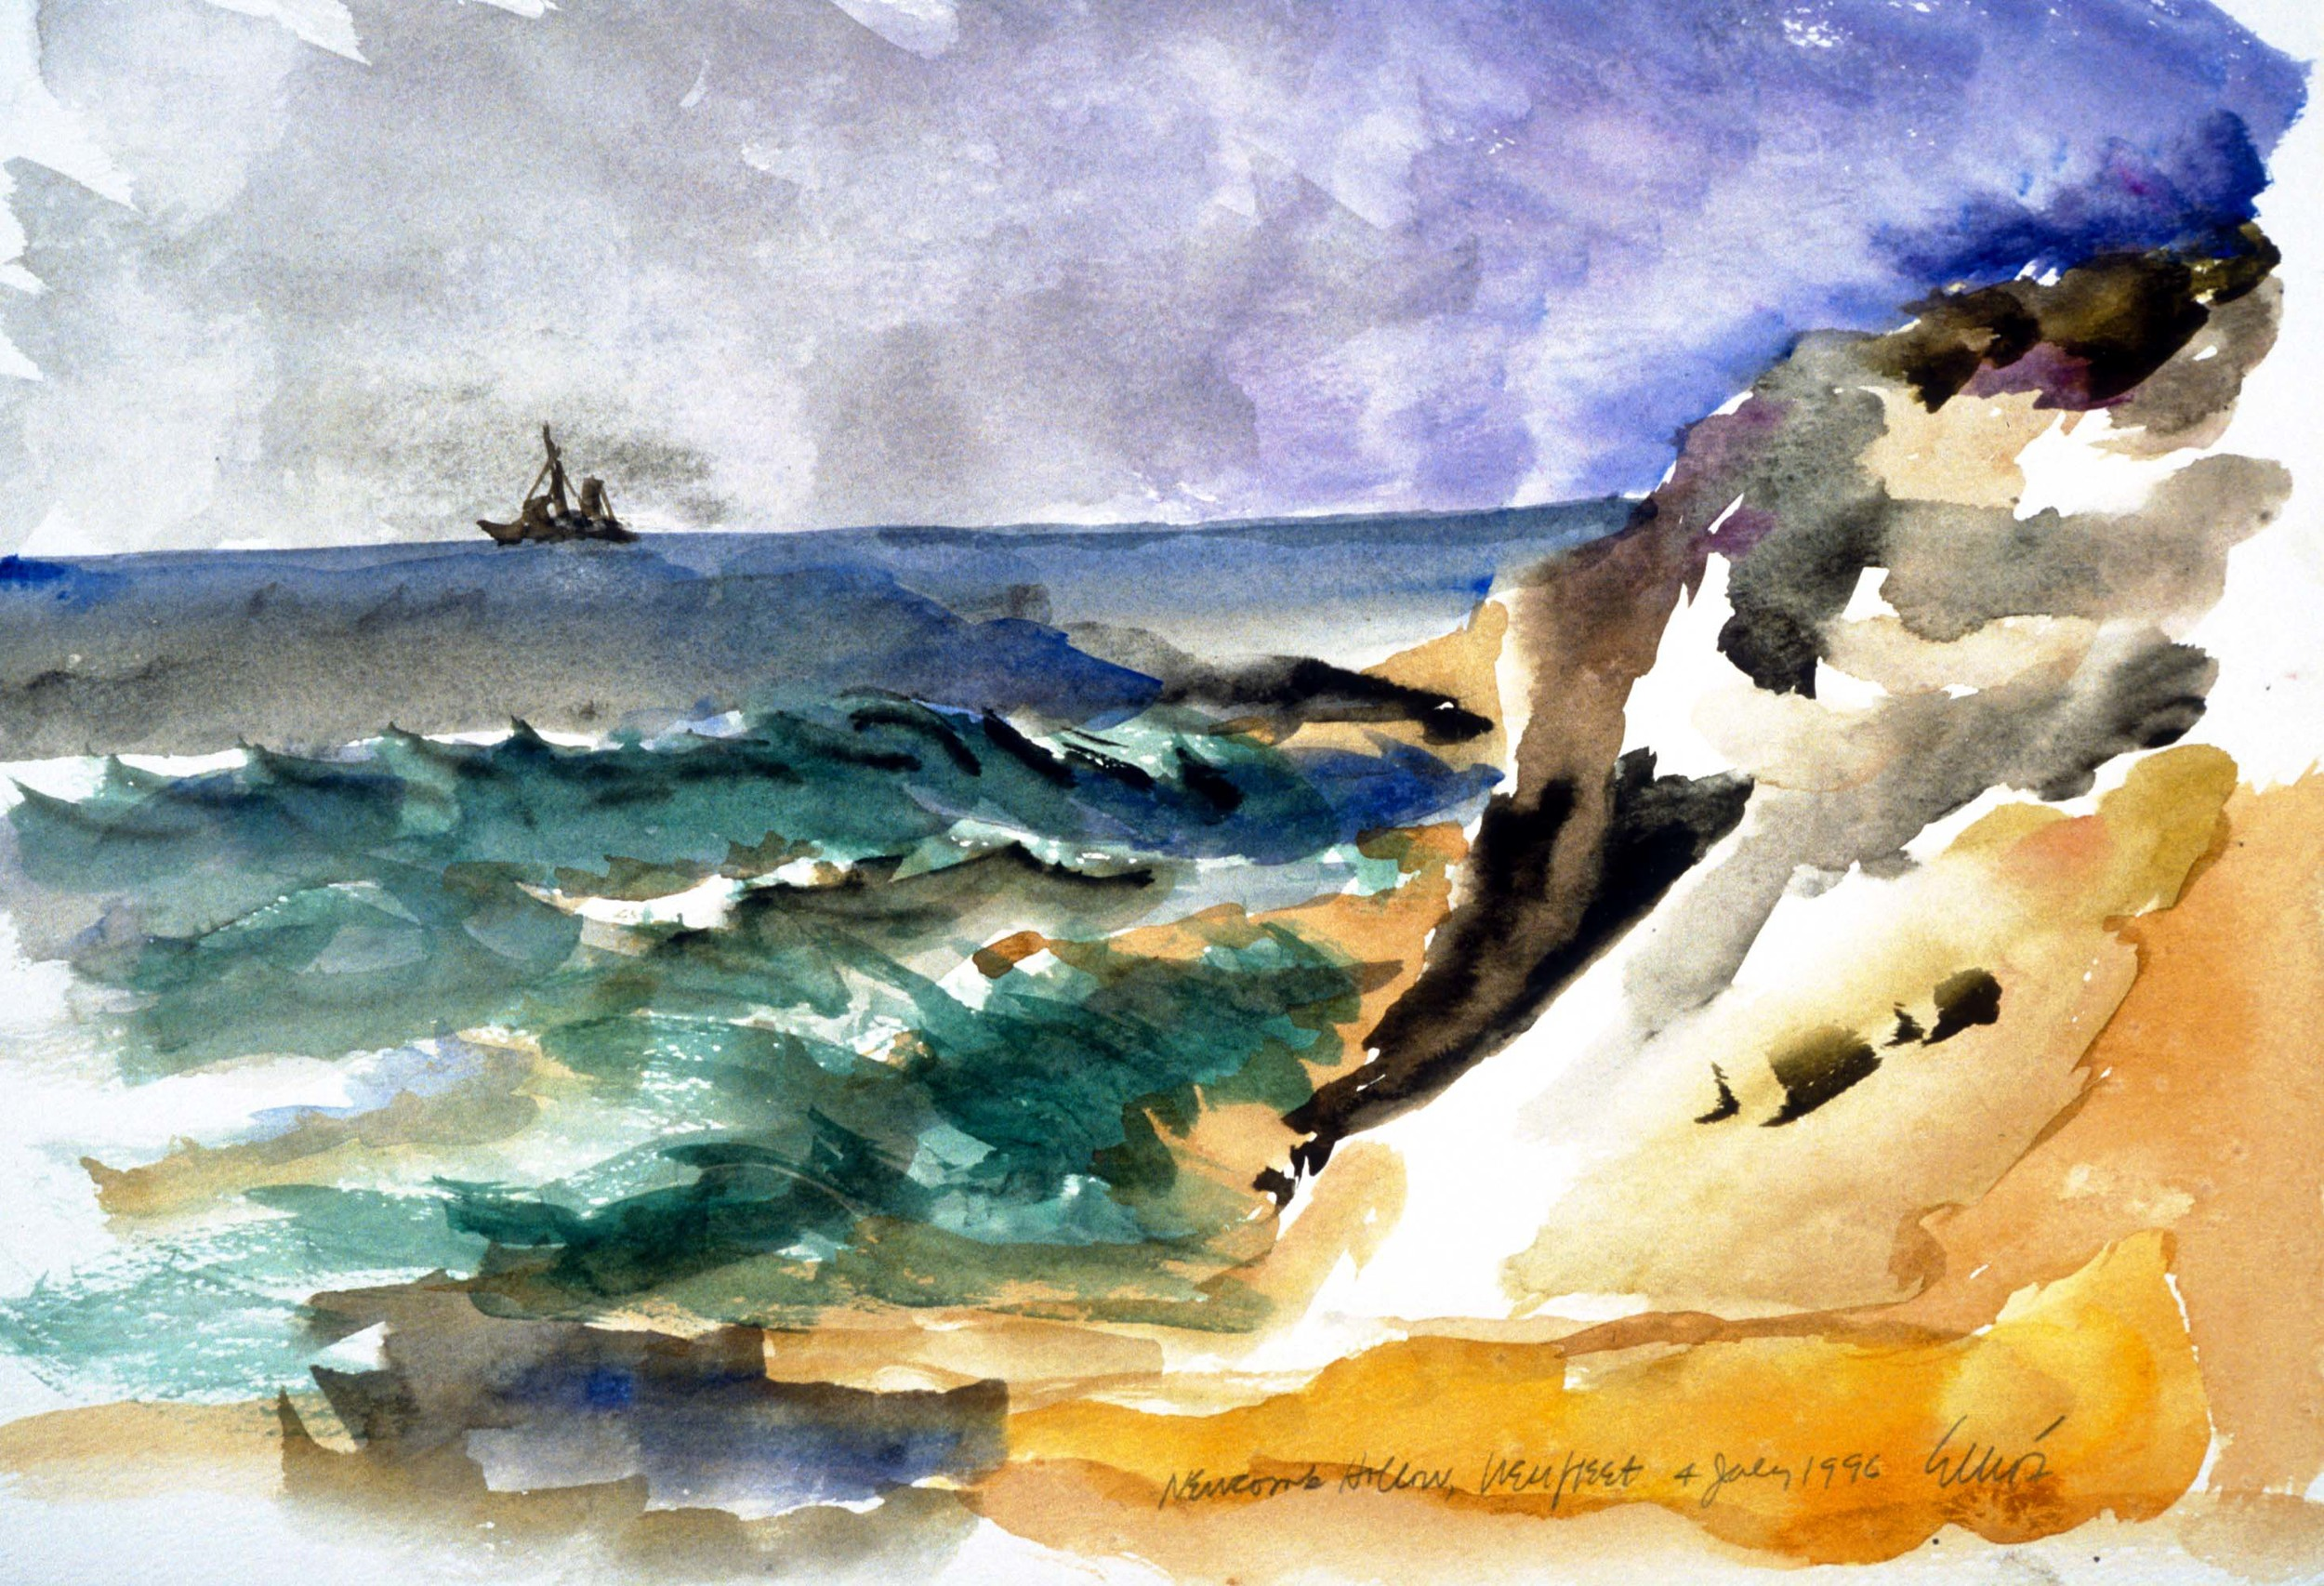 Newcomb Hollow Boat